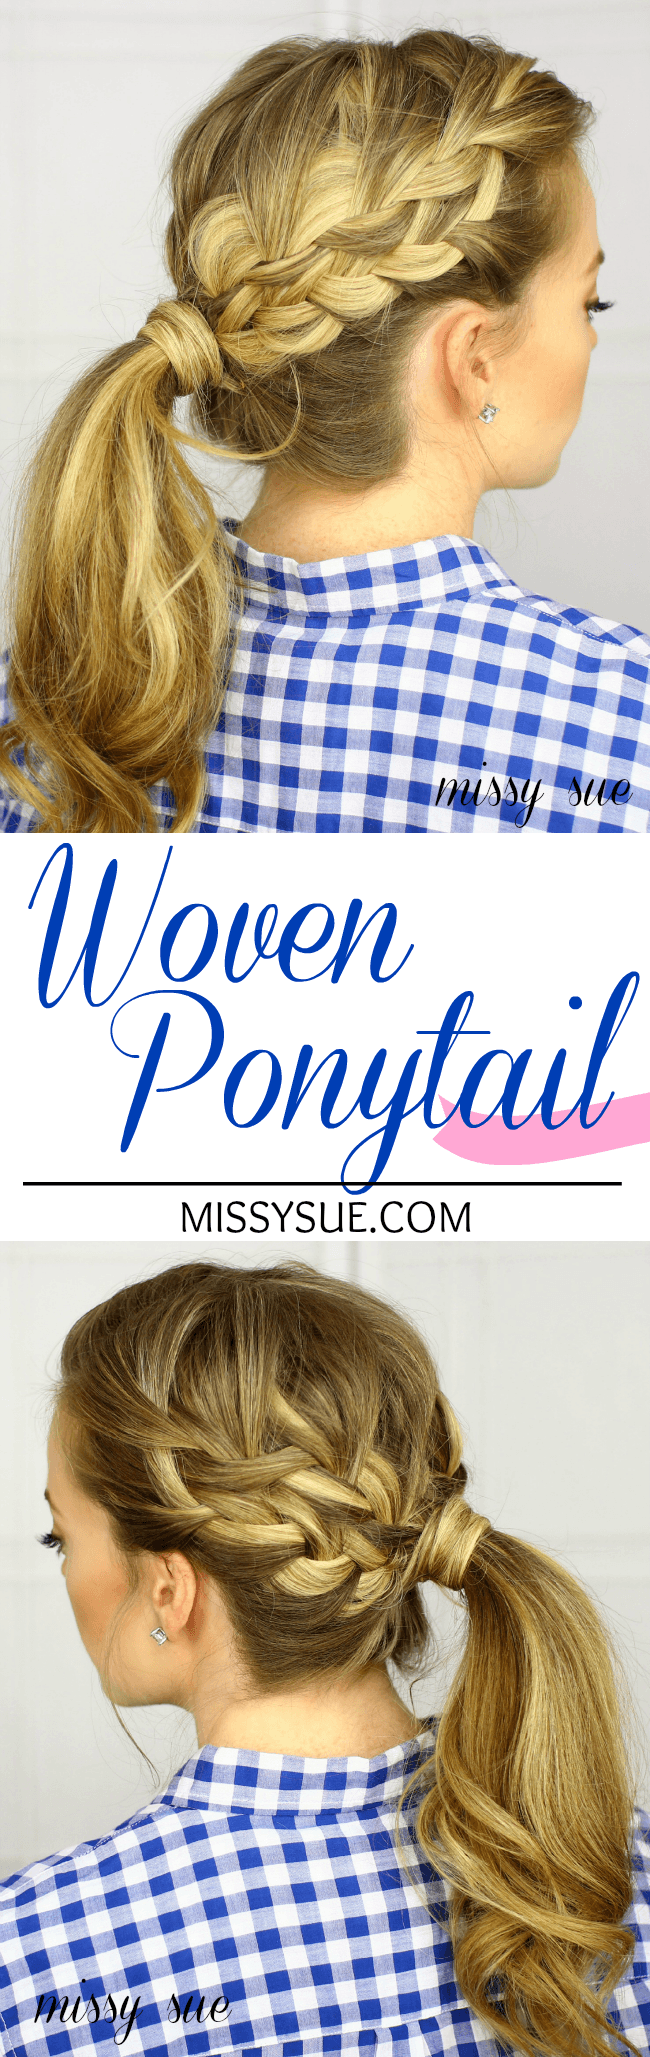 Woven Ponytail Tutorial